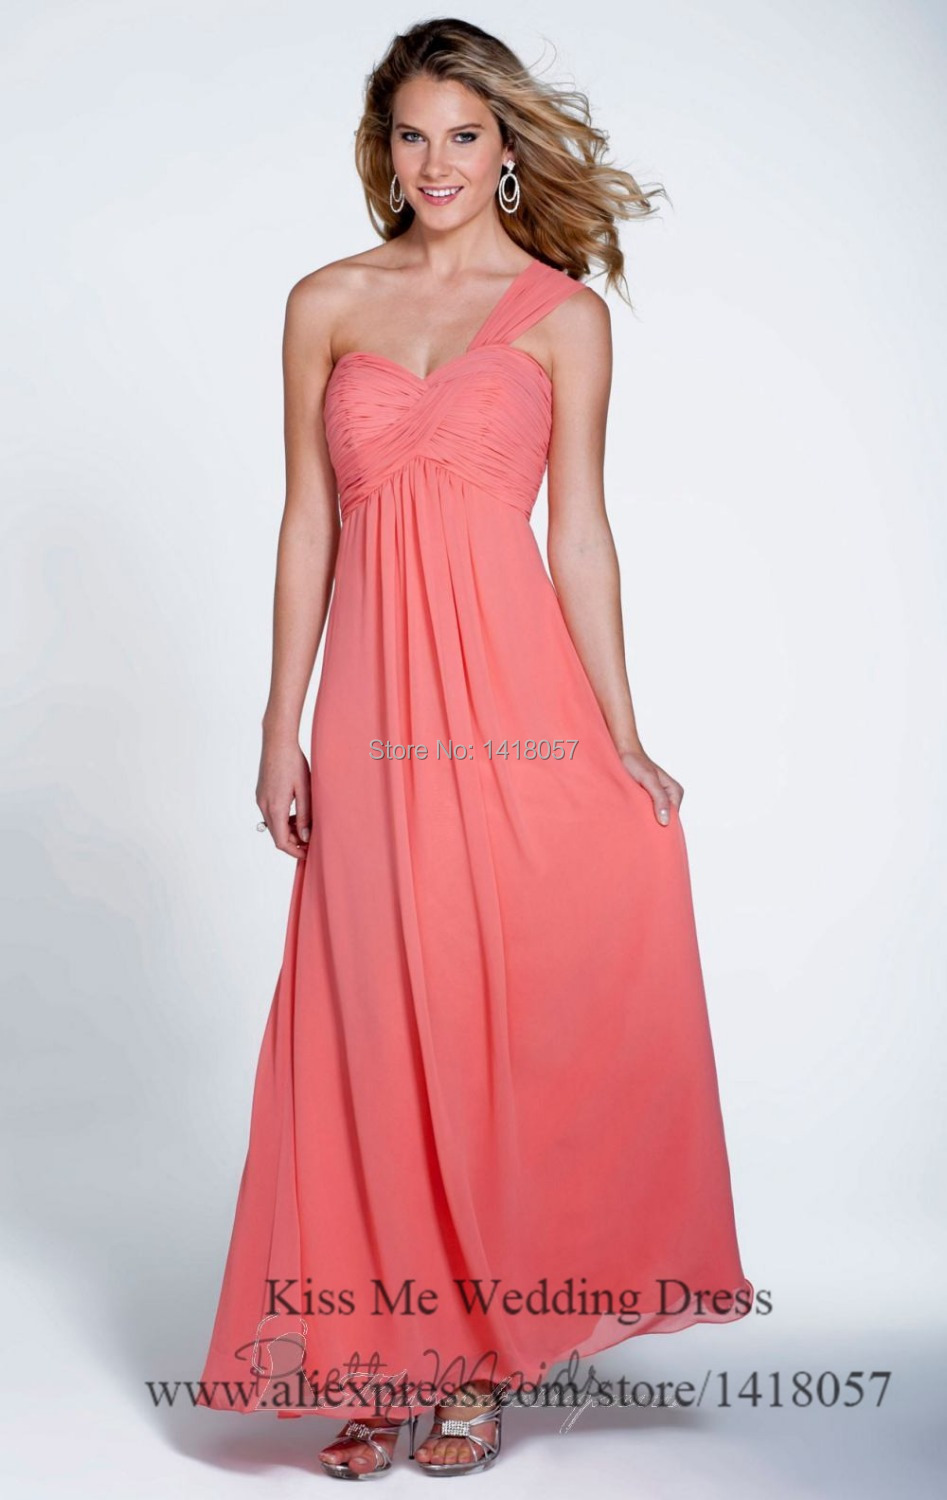 Sell bridesmaid dresses uk vosoi sell bridesmaid dress vosoi ombrellifo Image collections